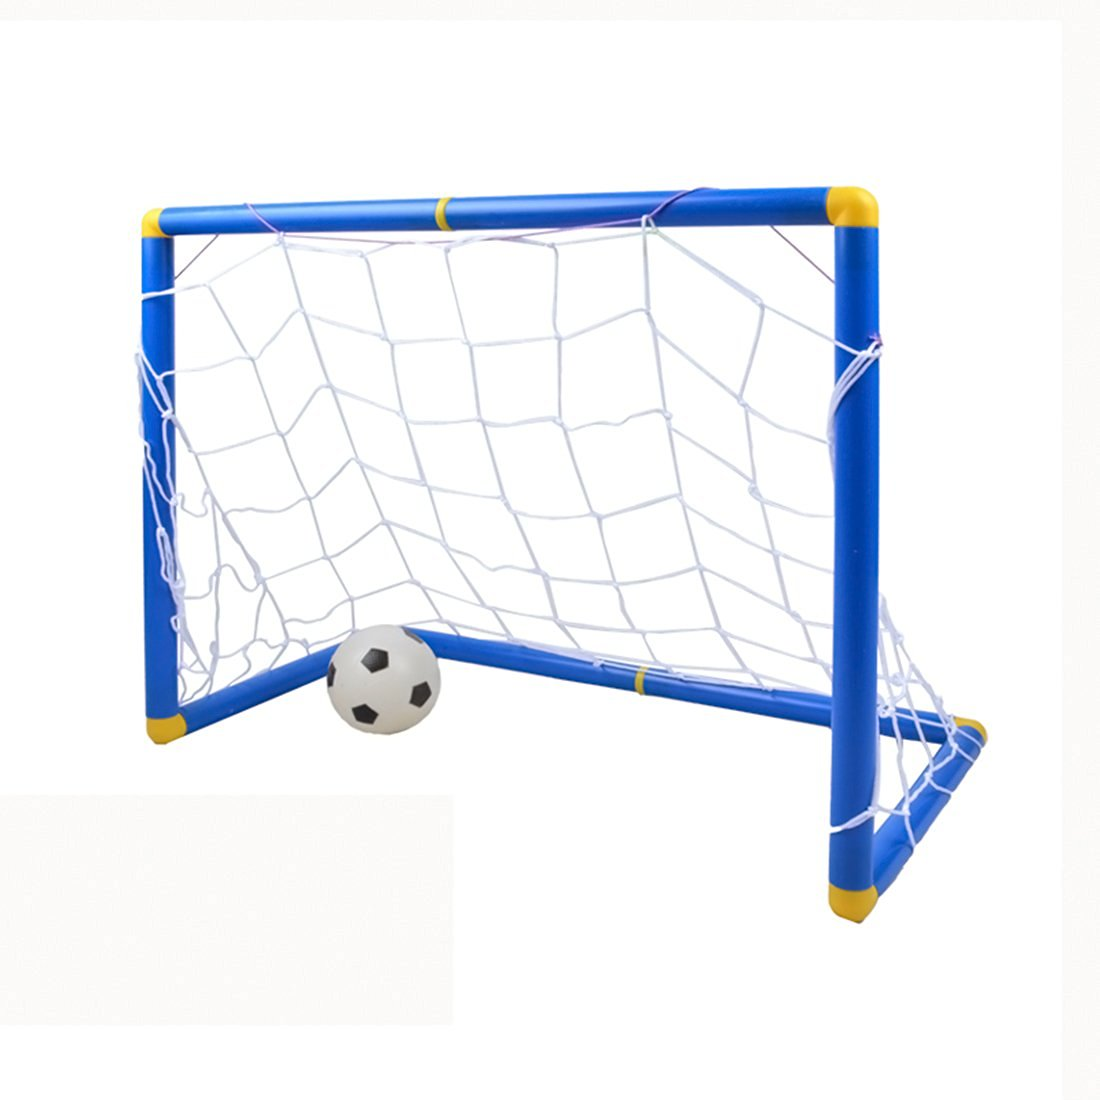 Soccer Goals, FINER Small Size Kids Children Sports Soccer Goals with Soccer Ball and Pump Practice Scrimmage Game - Blue + White by FINER SHOP